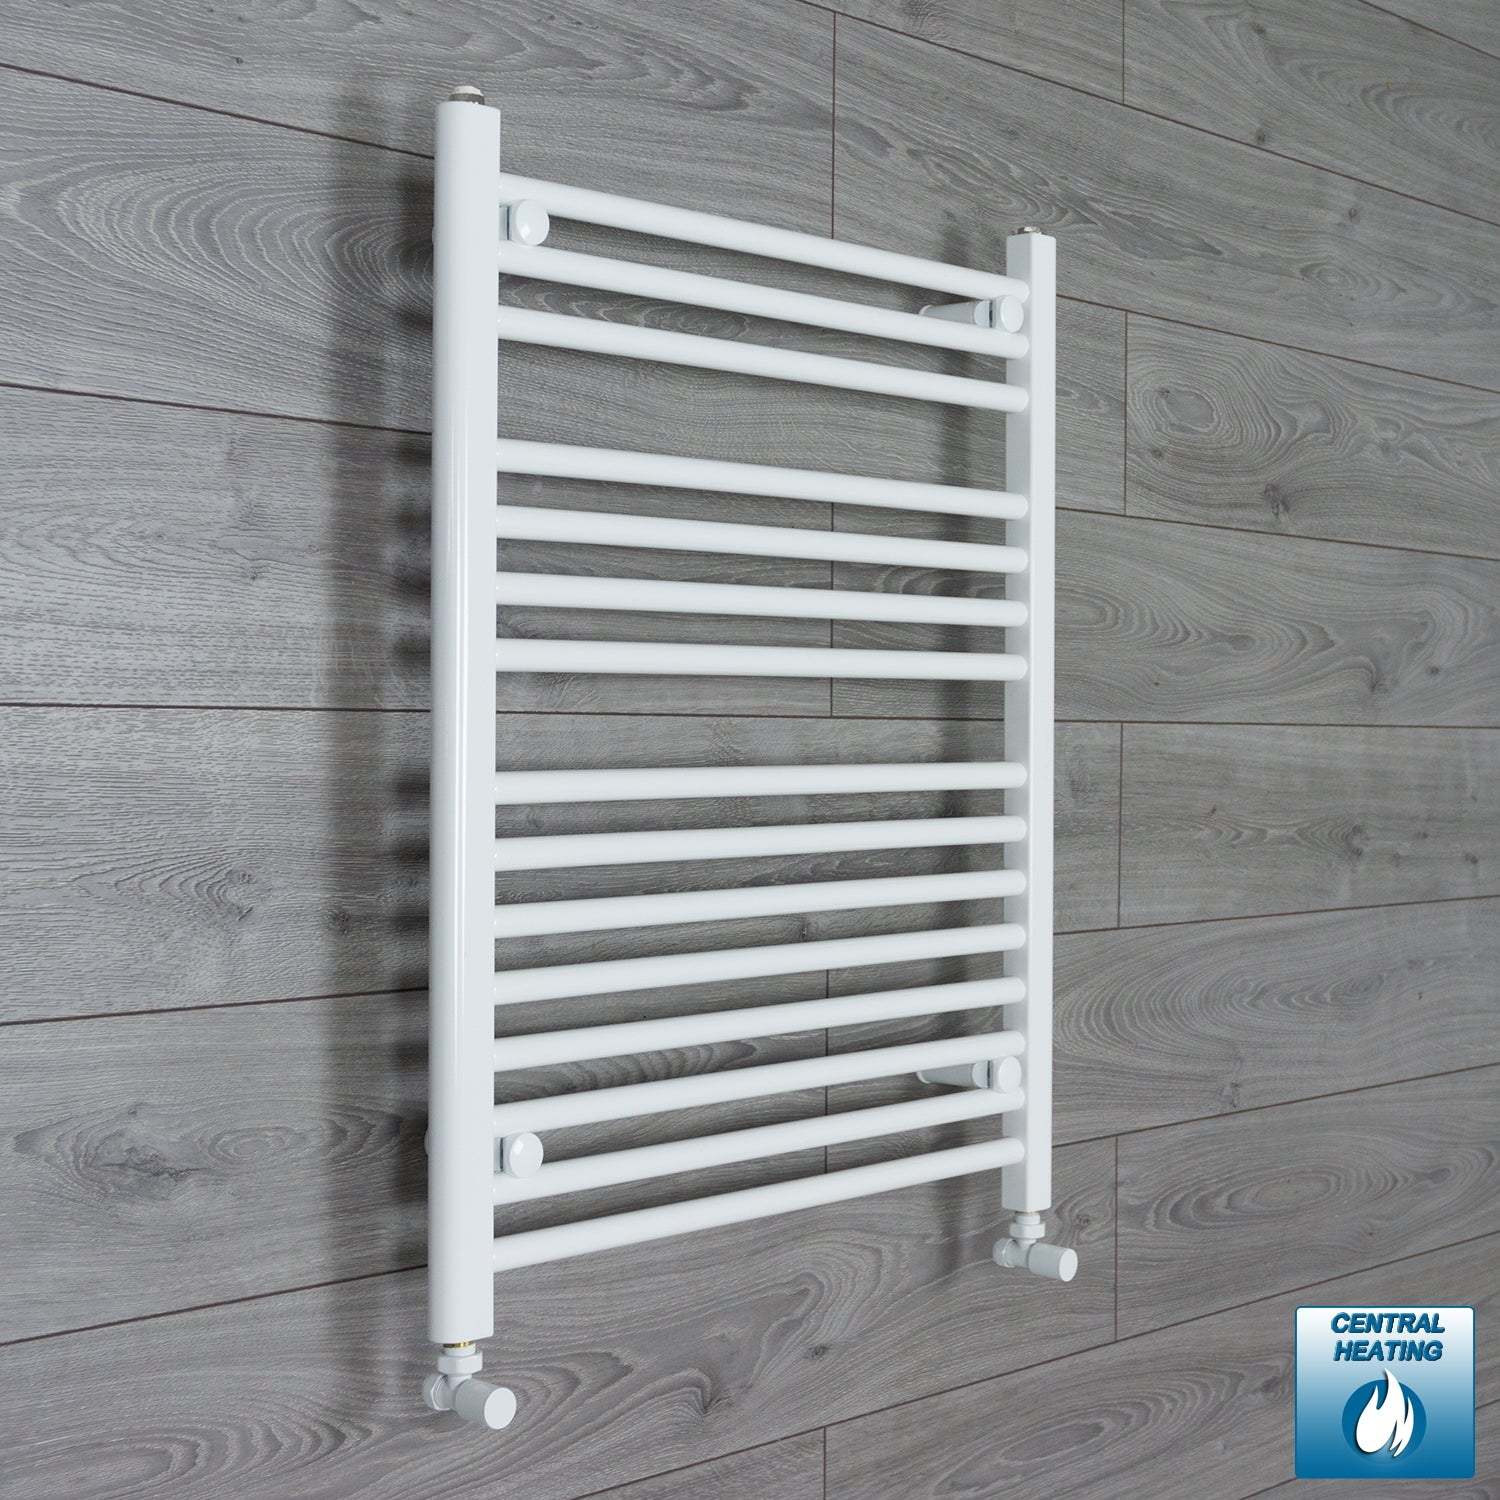 700mm x 800mm High White Towel Rail Radiator With Angled Valve